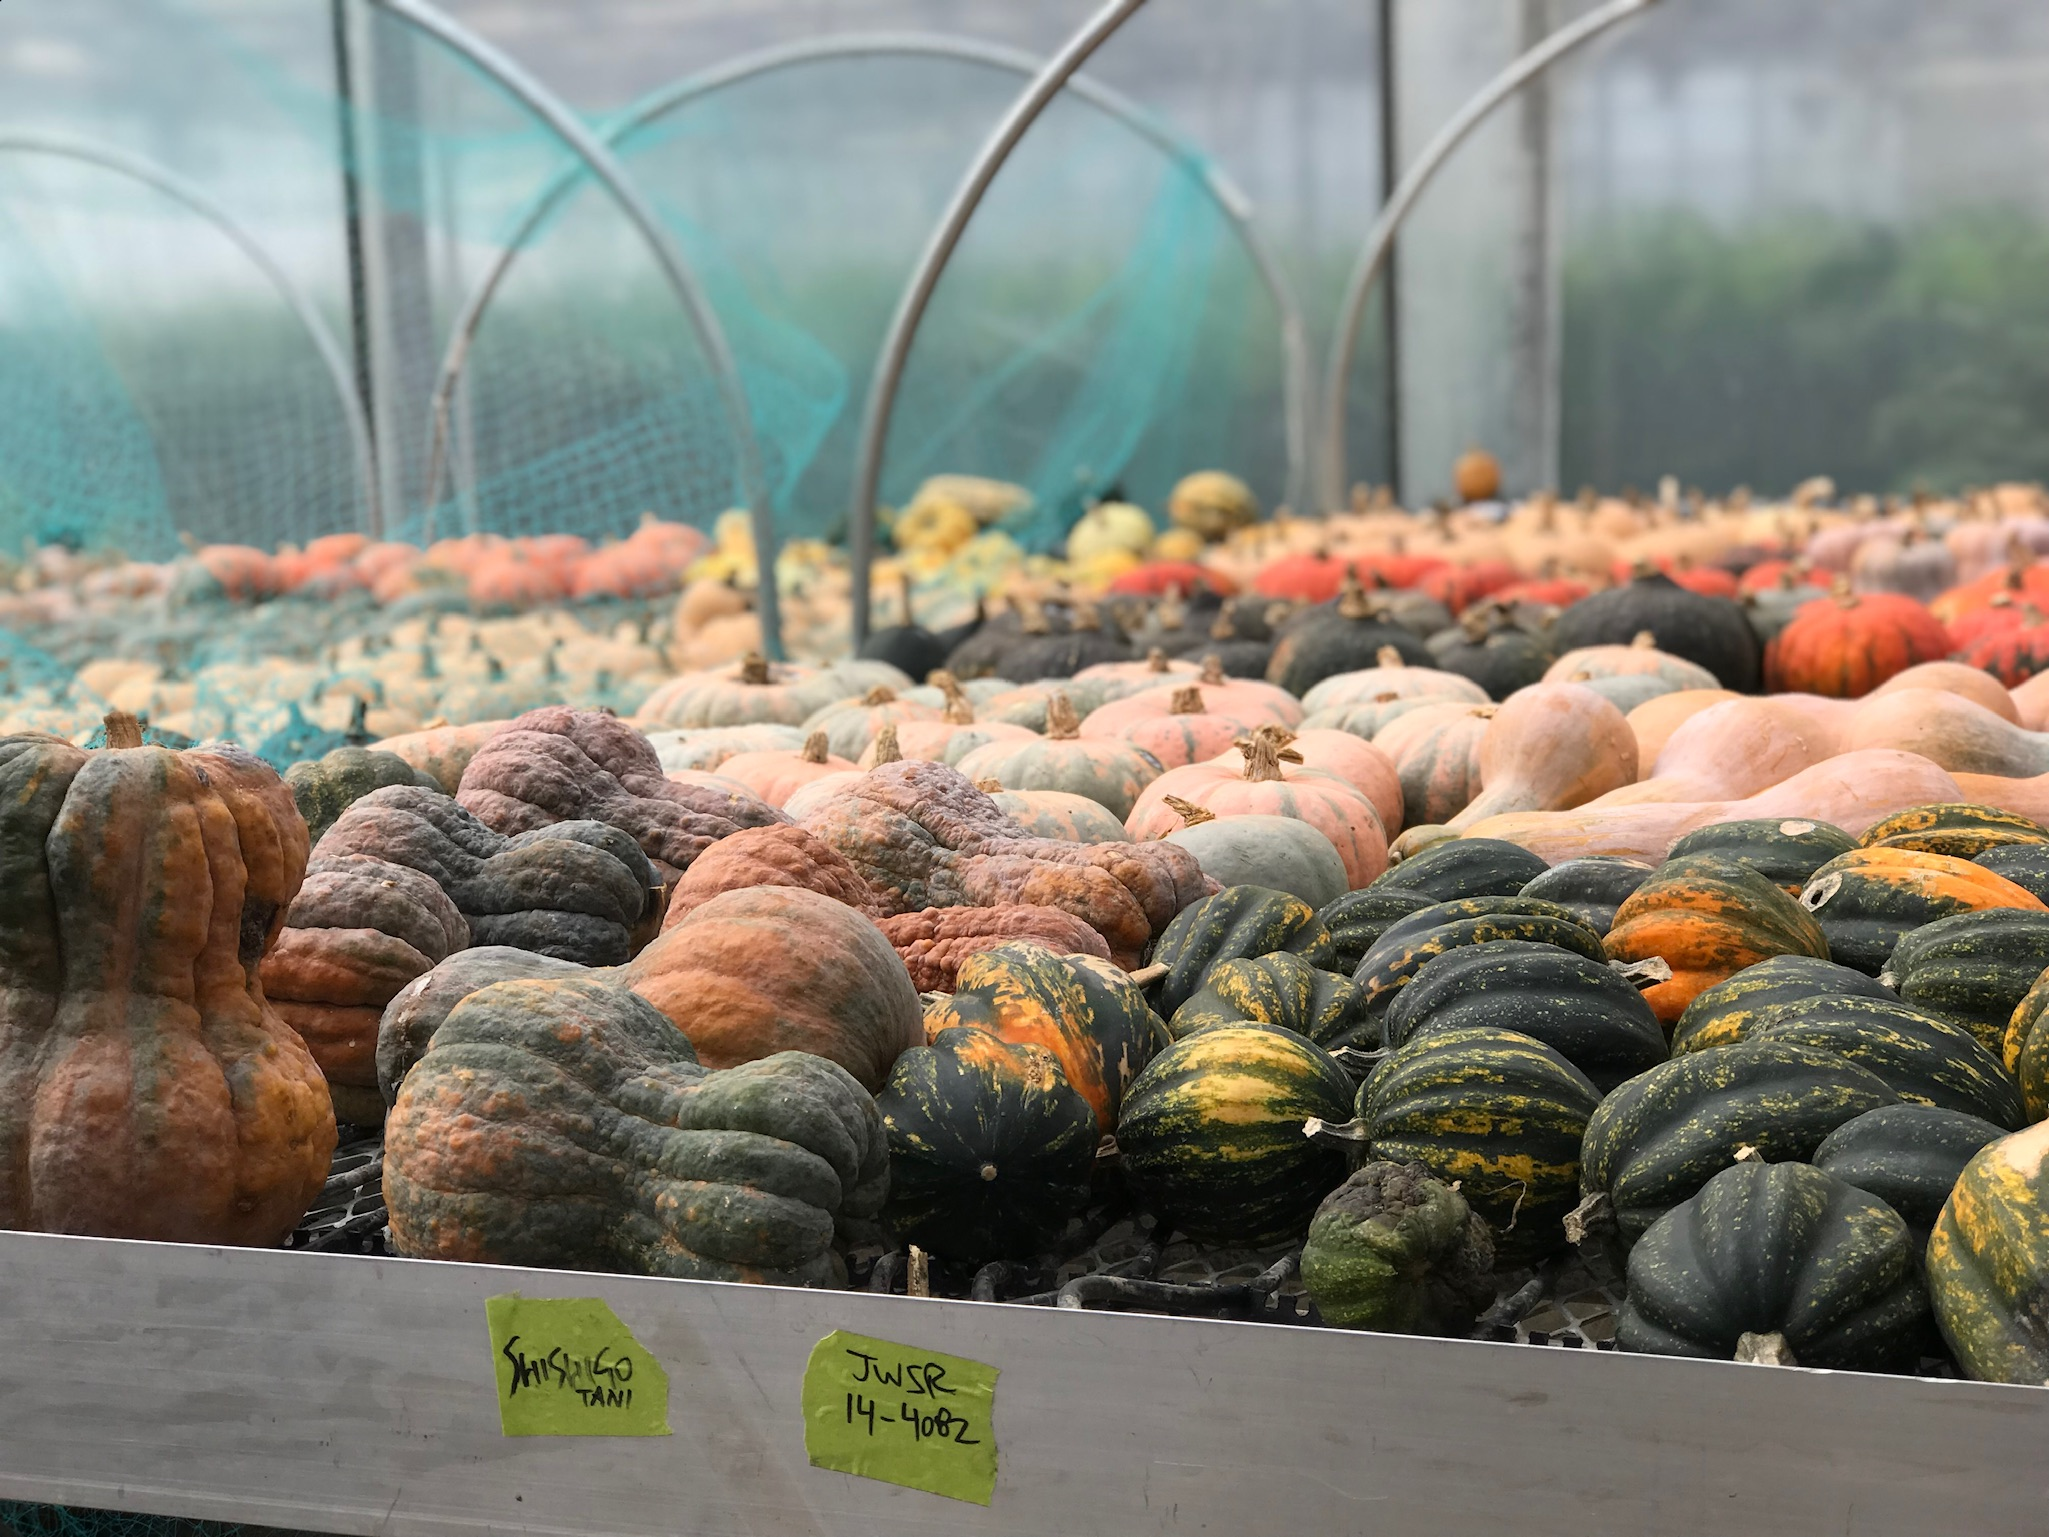 During a farm tour, I spotted these gourds in a greenhouse.